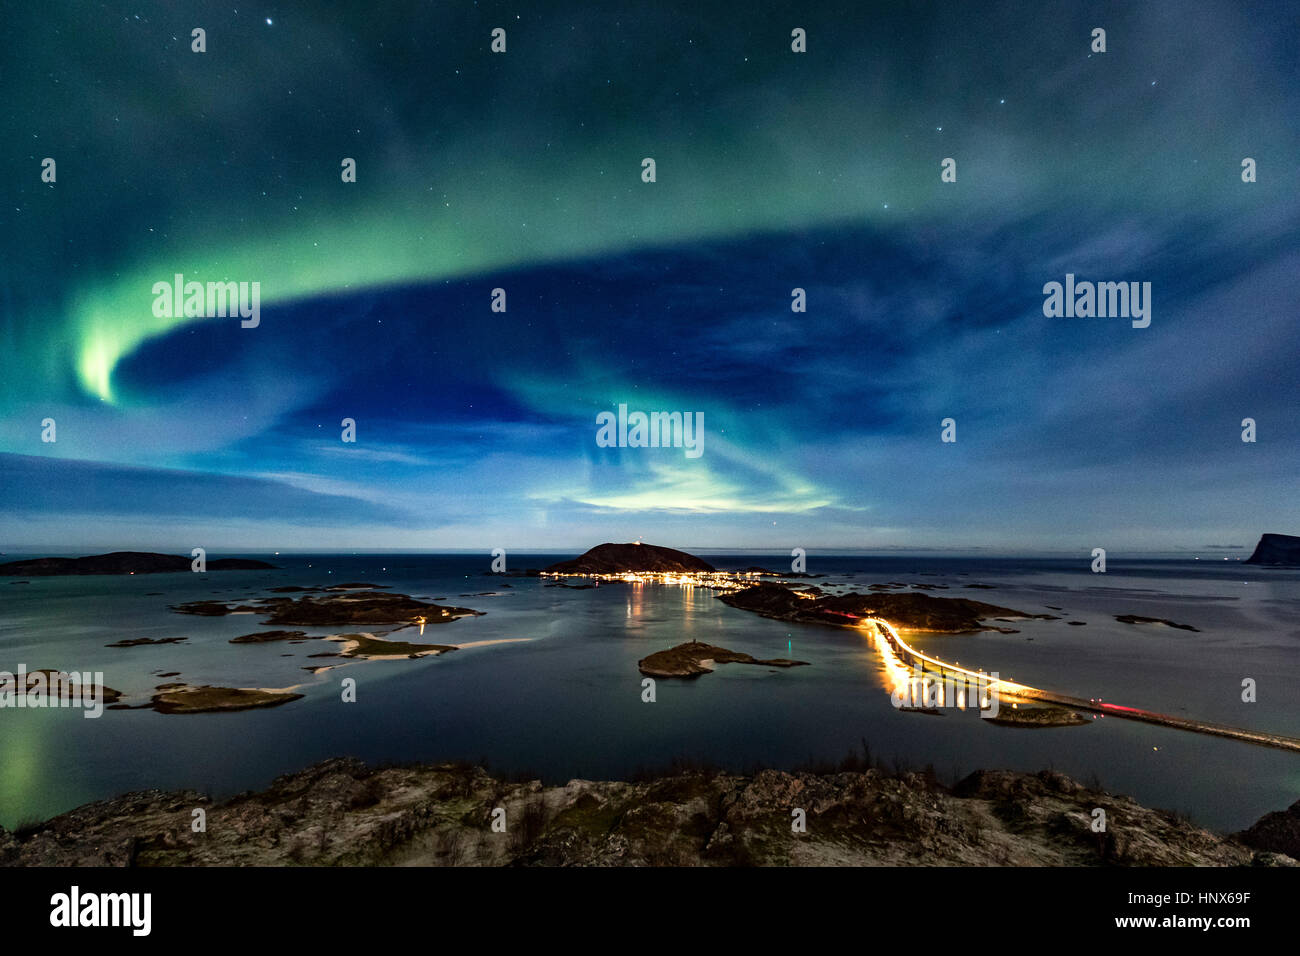 Aurora Borealis in the night sky over Sommaroy Bridge crossing from Kvaloya Island to Sommaroy island, Arctic Norway - Stock Image